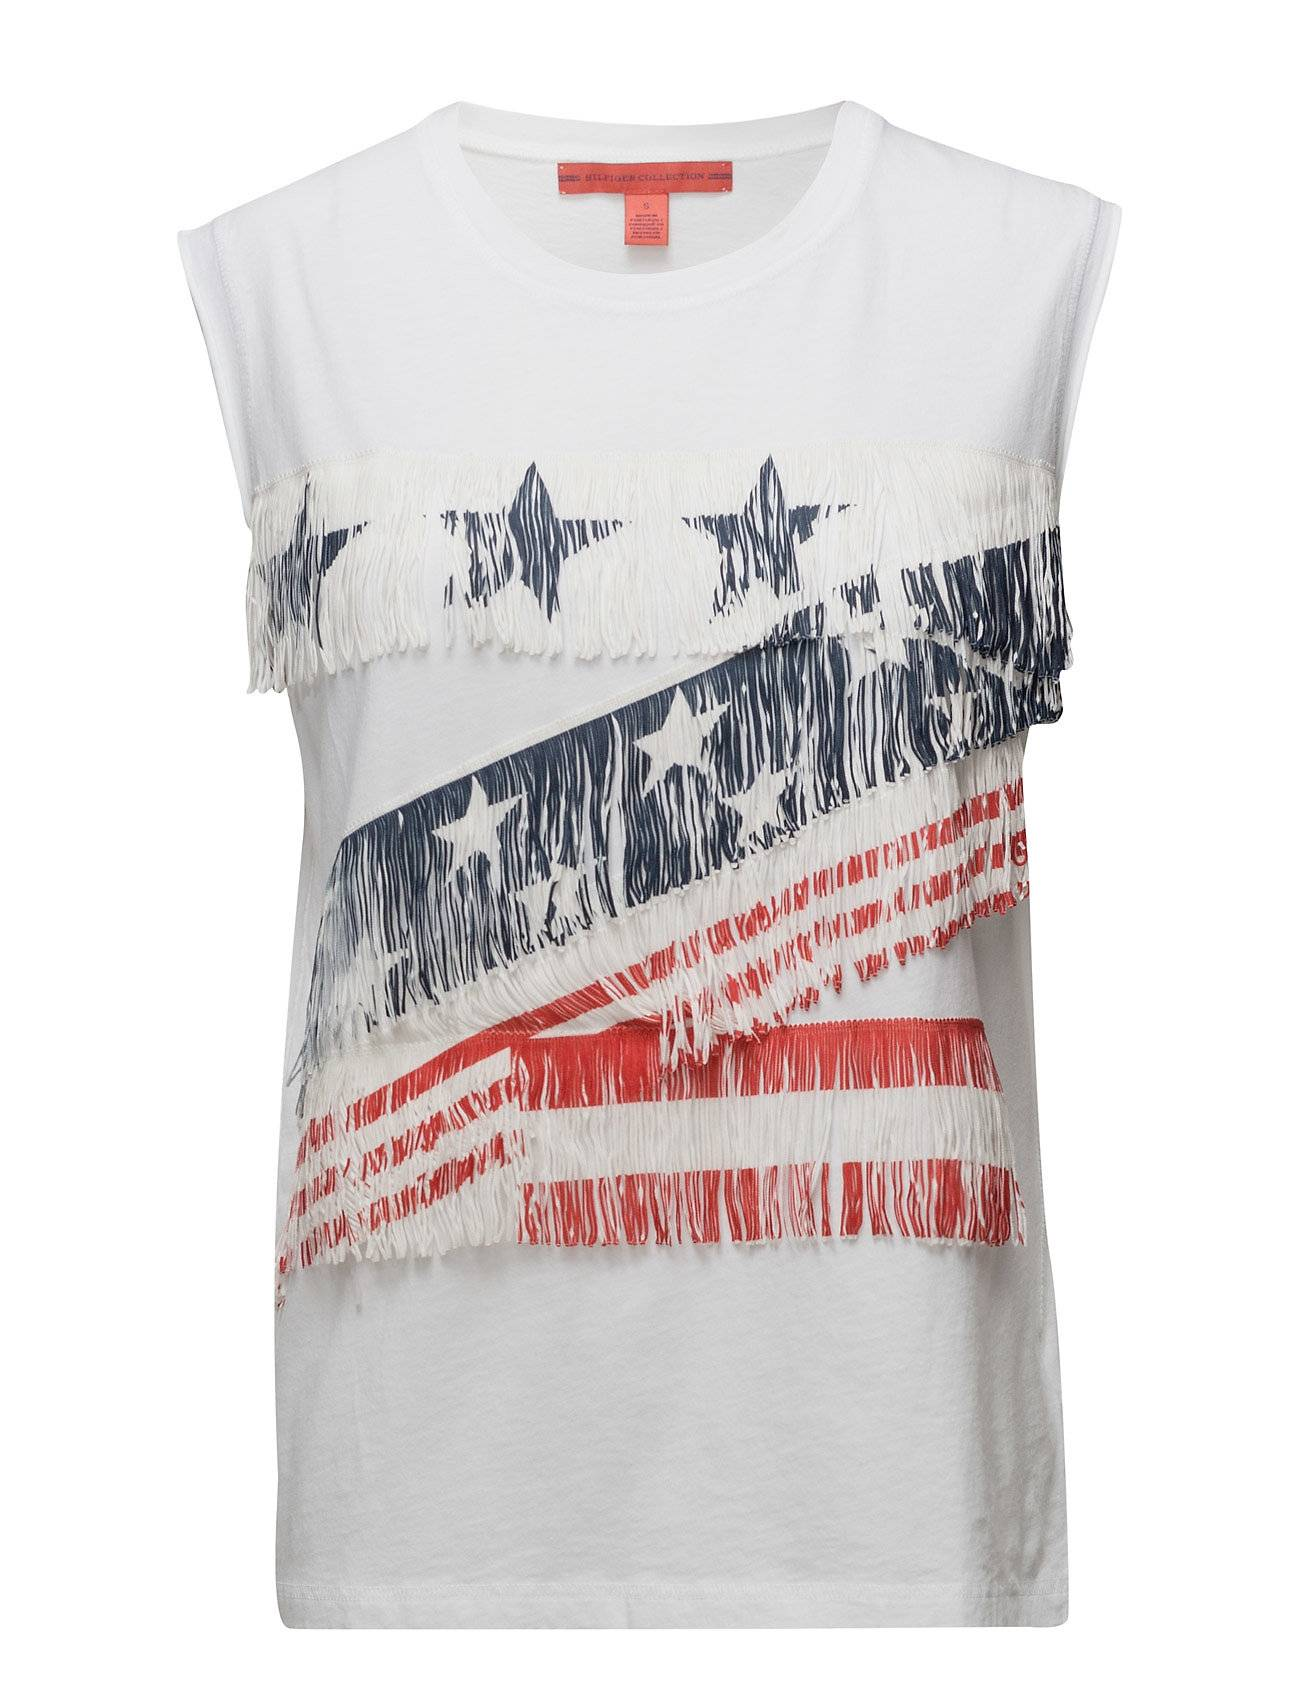 Hilfiger Collection American Ns Graphic T-Shirt